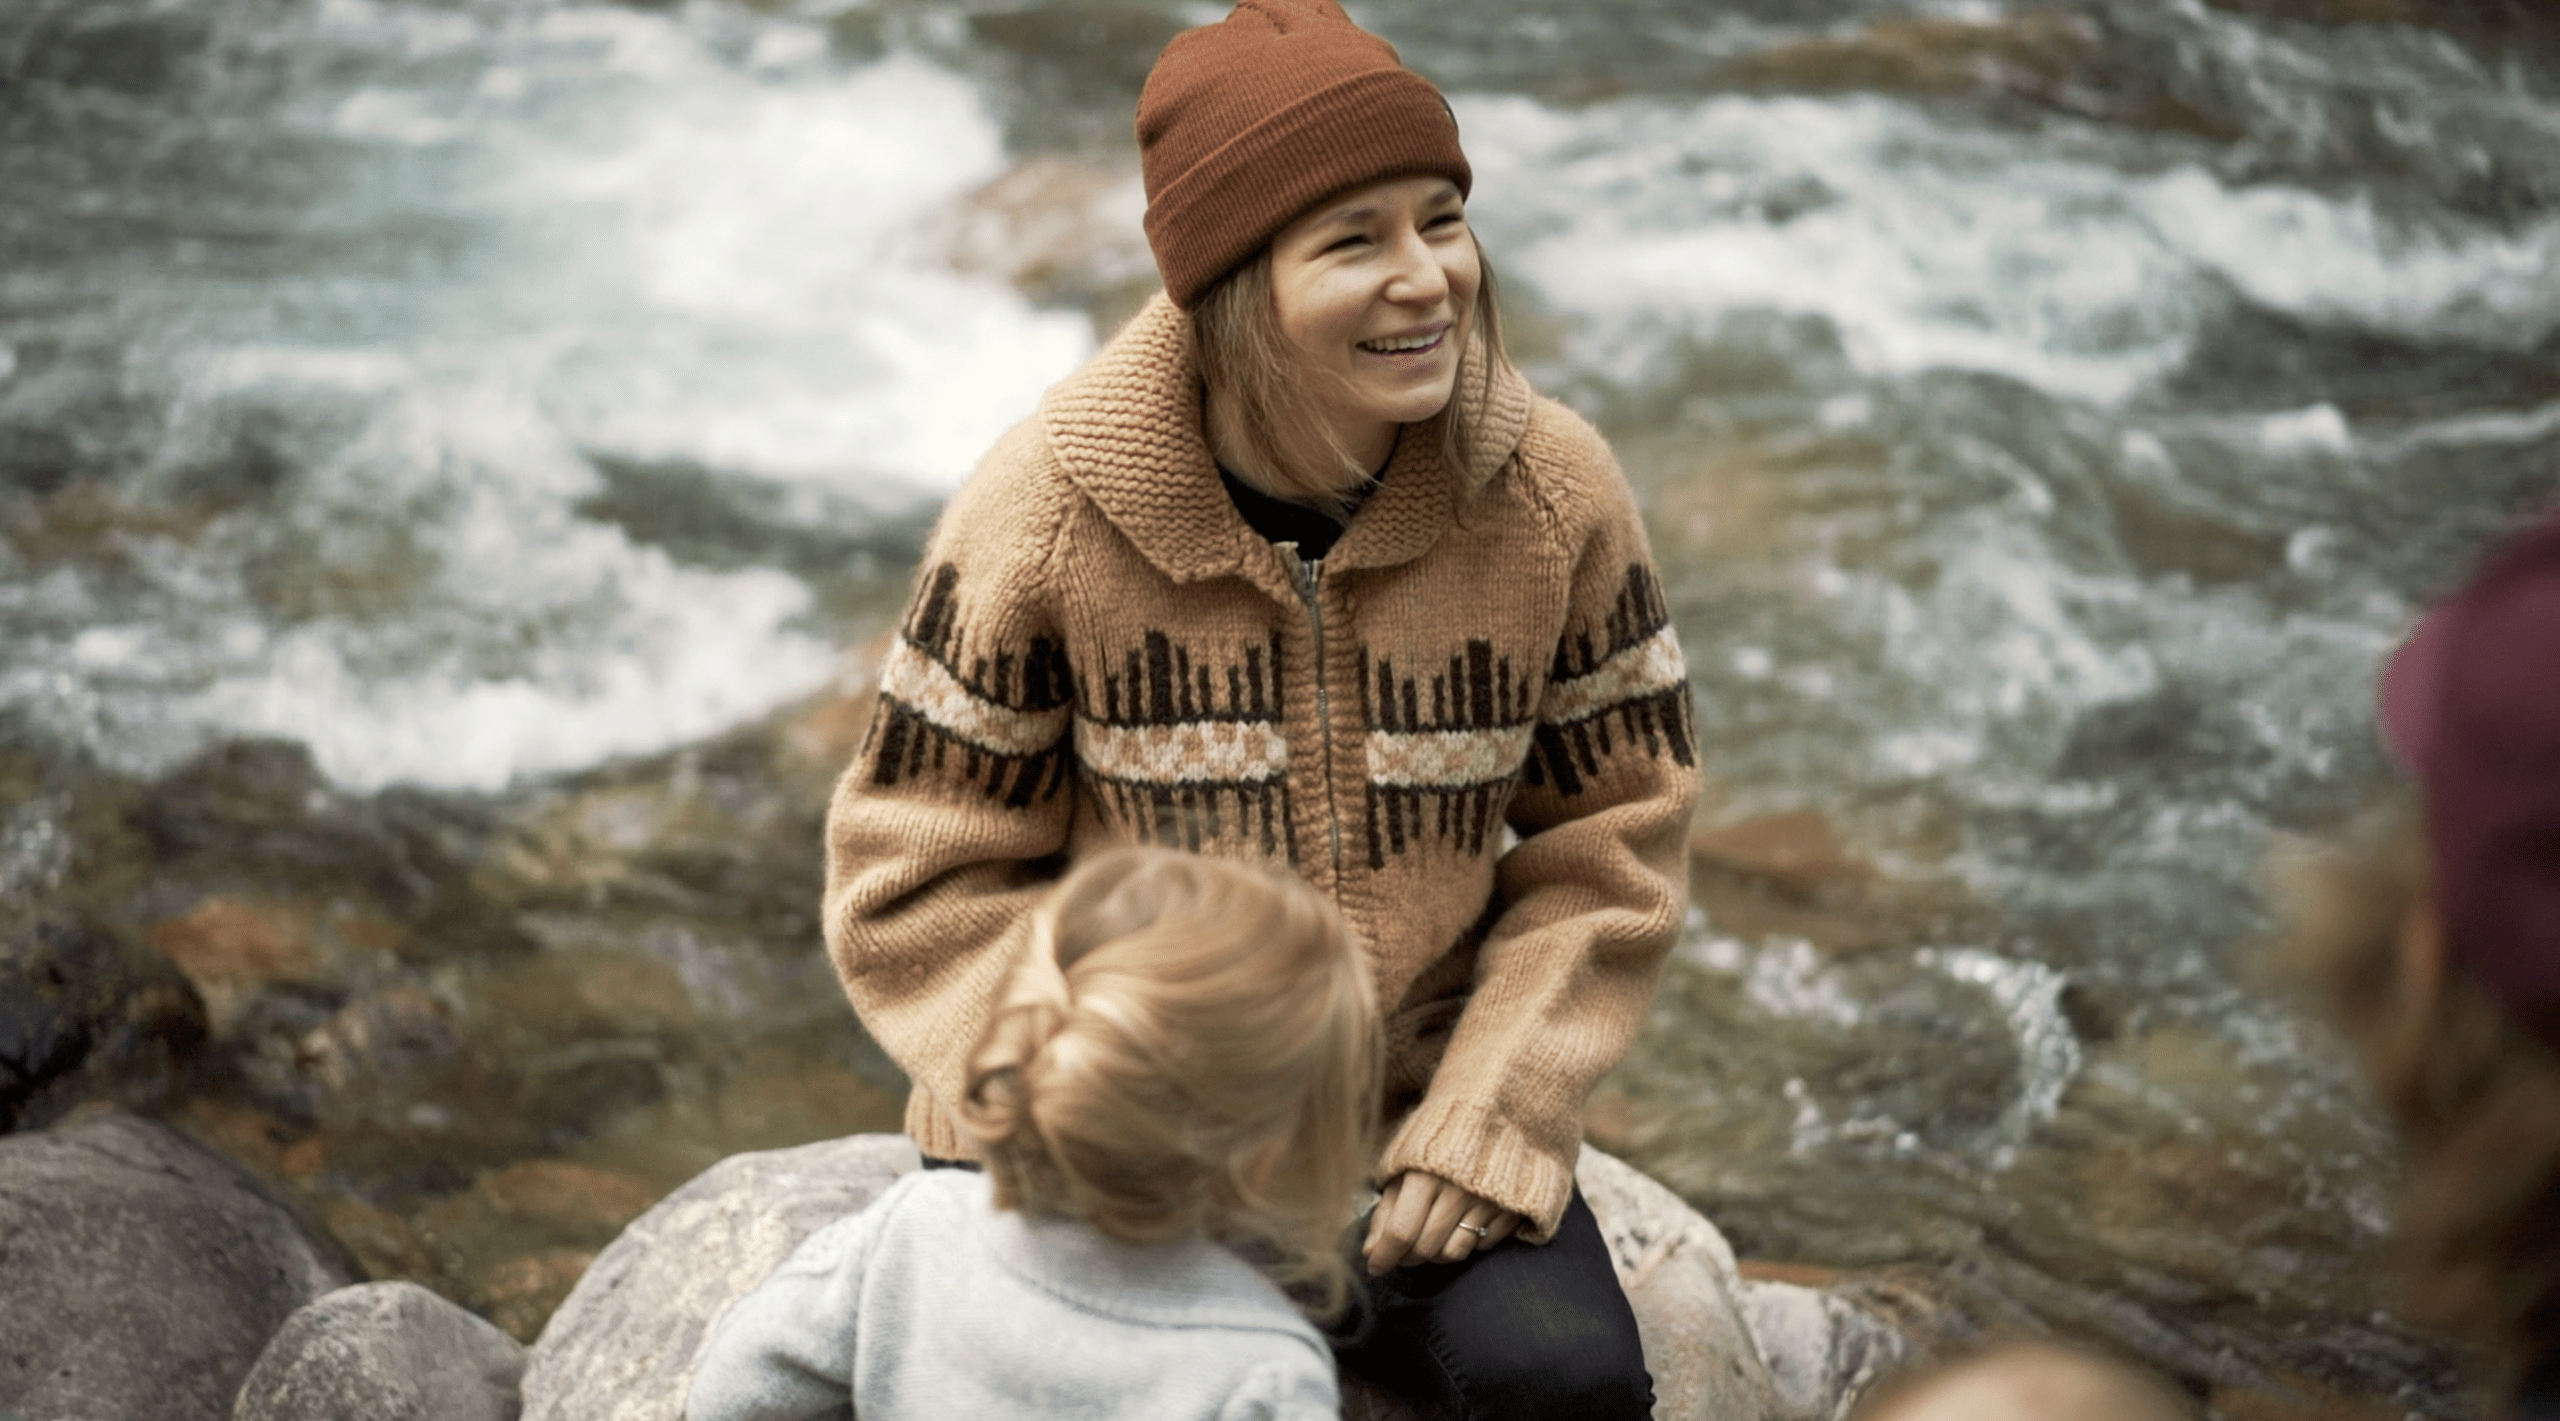 Jena Lee Photographs working with a family for their photography session at a river